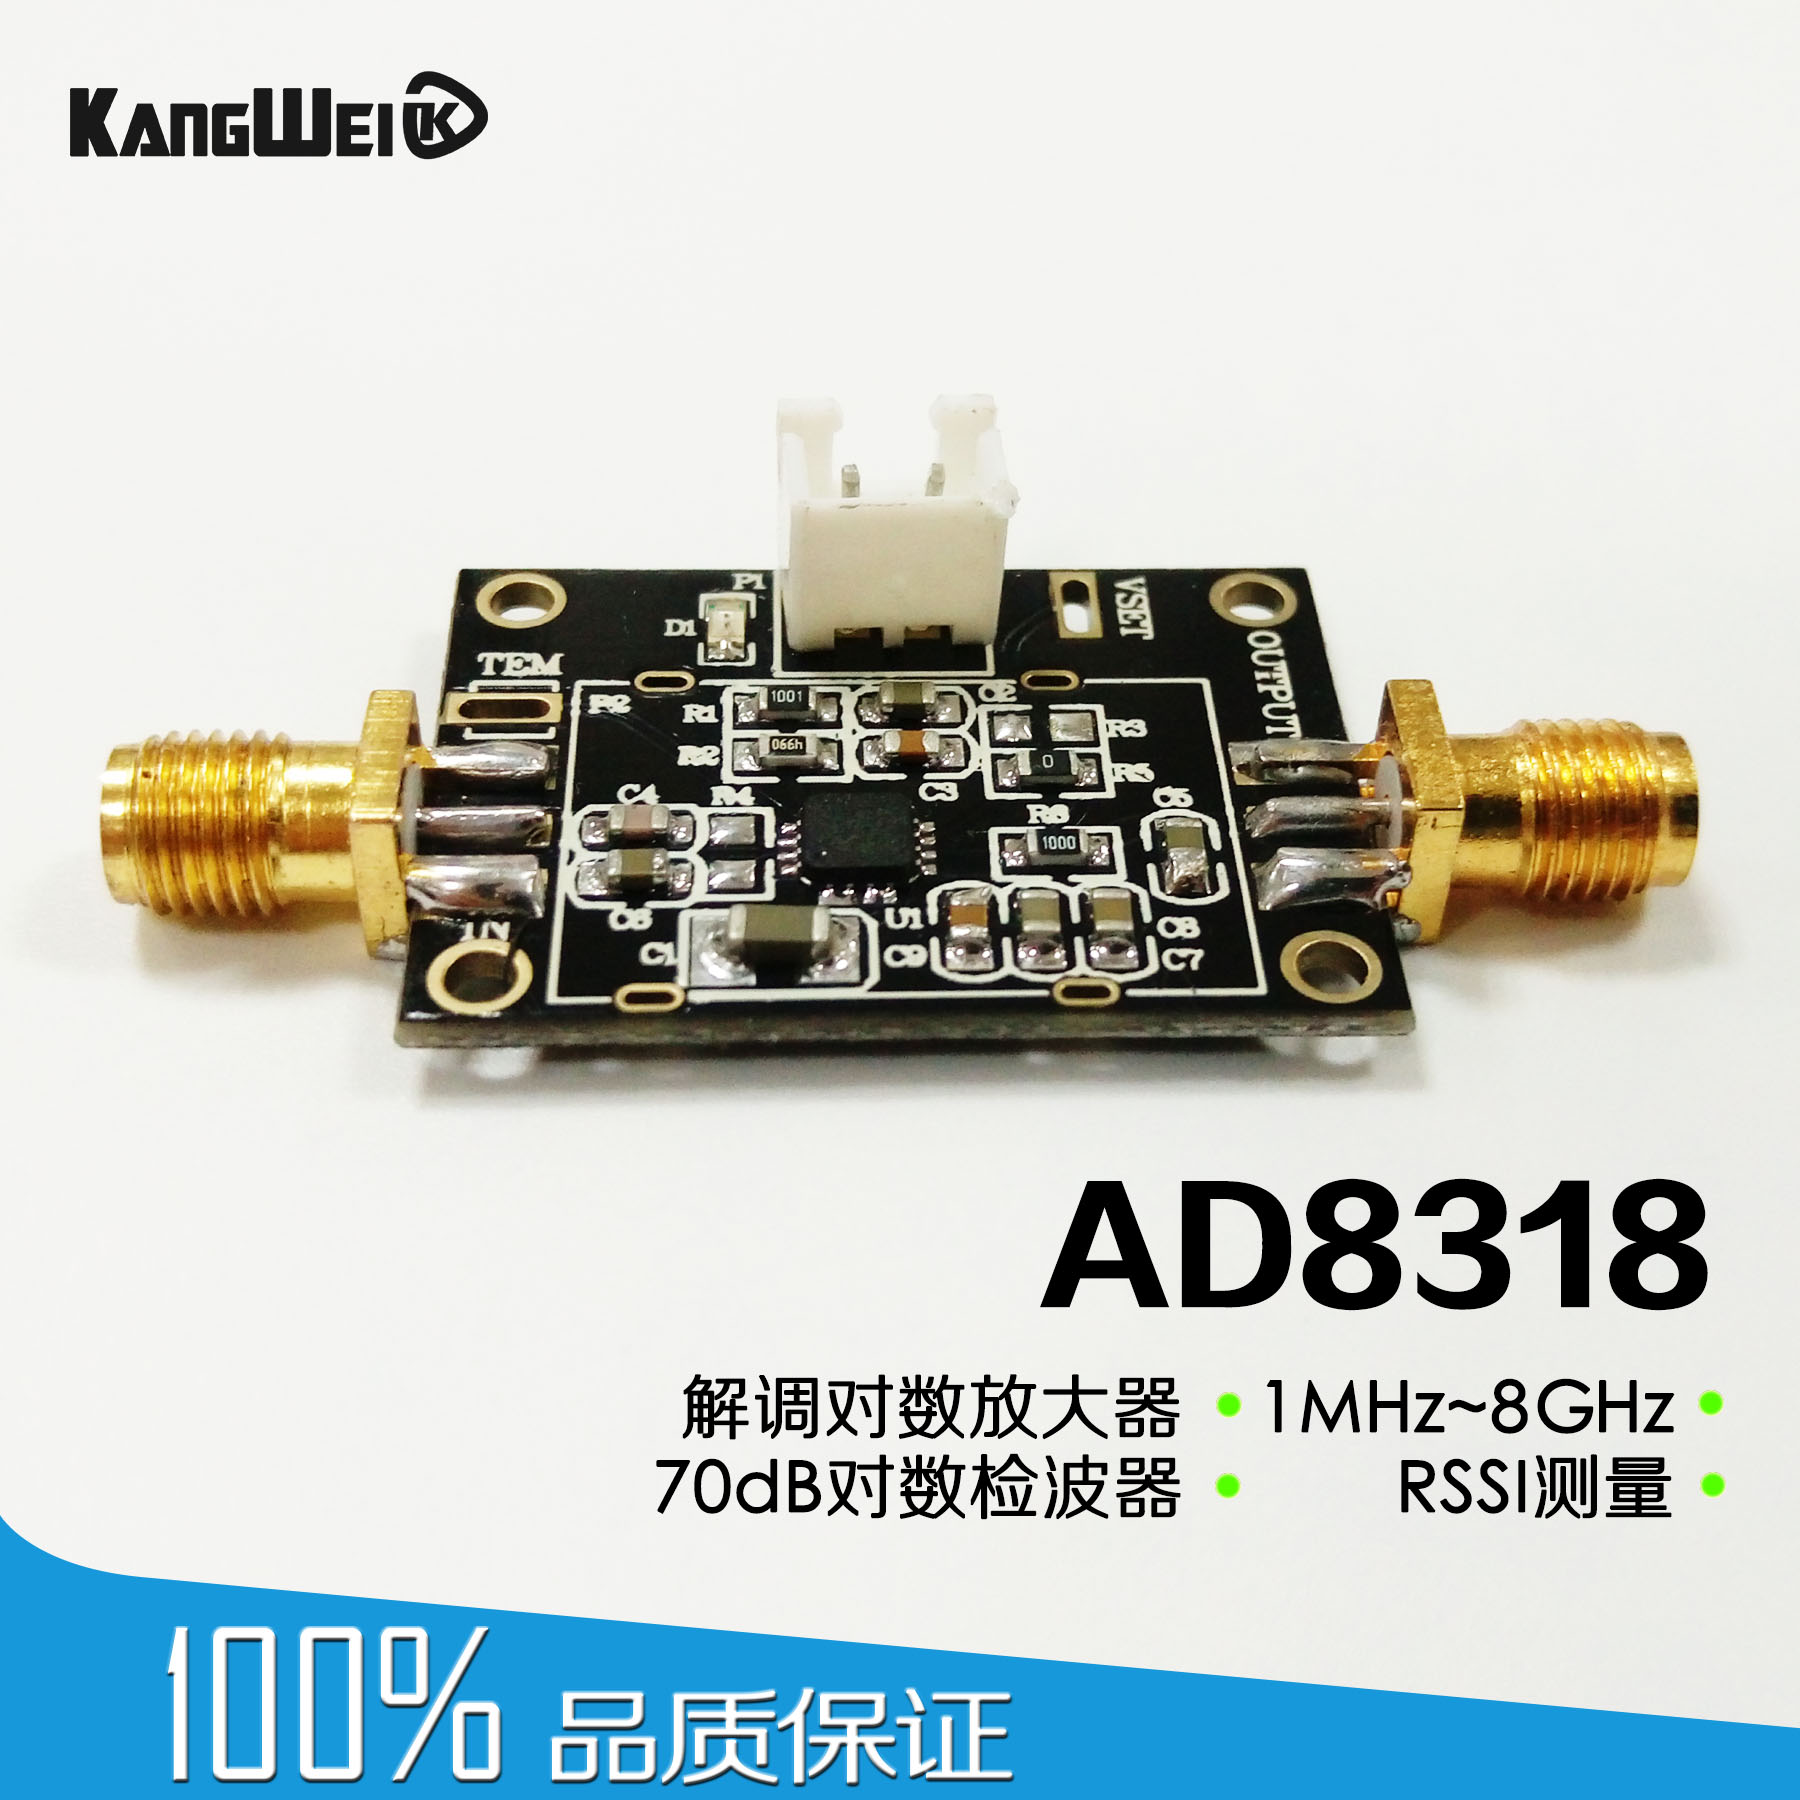 AD8318 Module, Logarithmic Detection Power Detection Module, 1M-8GHz, RSSI, RF Power Meter pregnancy belly nudeskin 1500g silicone belly soft lifelike moq1 free shipping fake belly for crossdresser drag queen xinxinmei